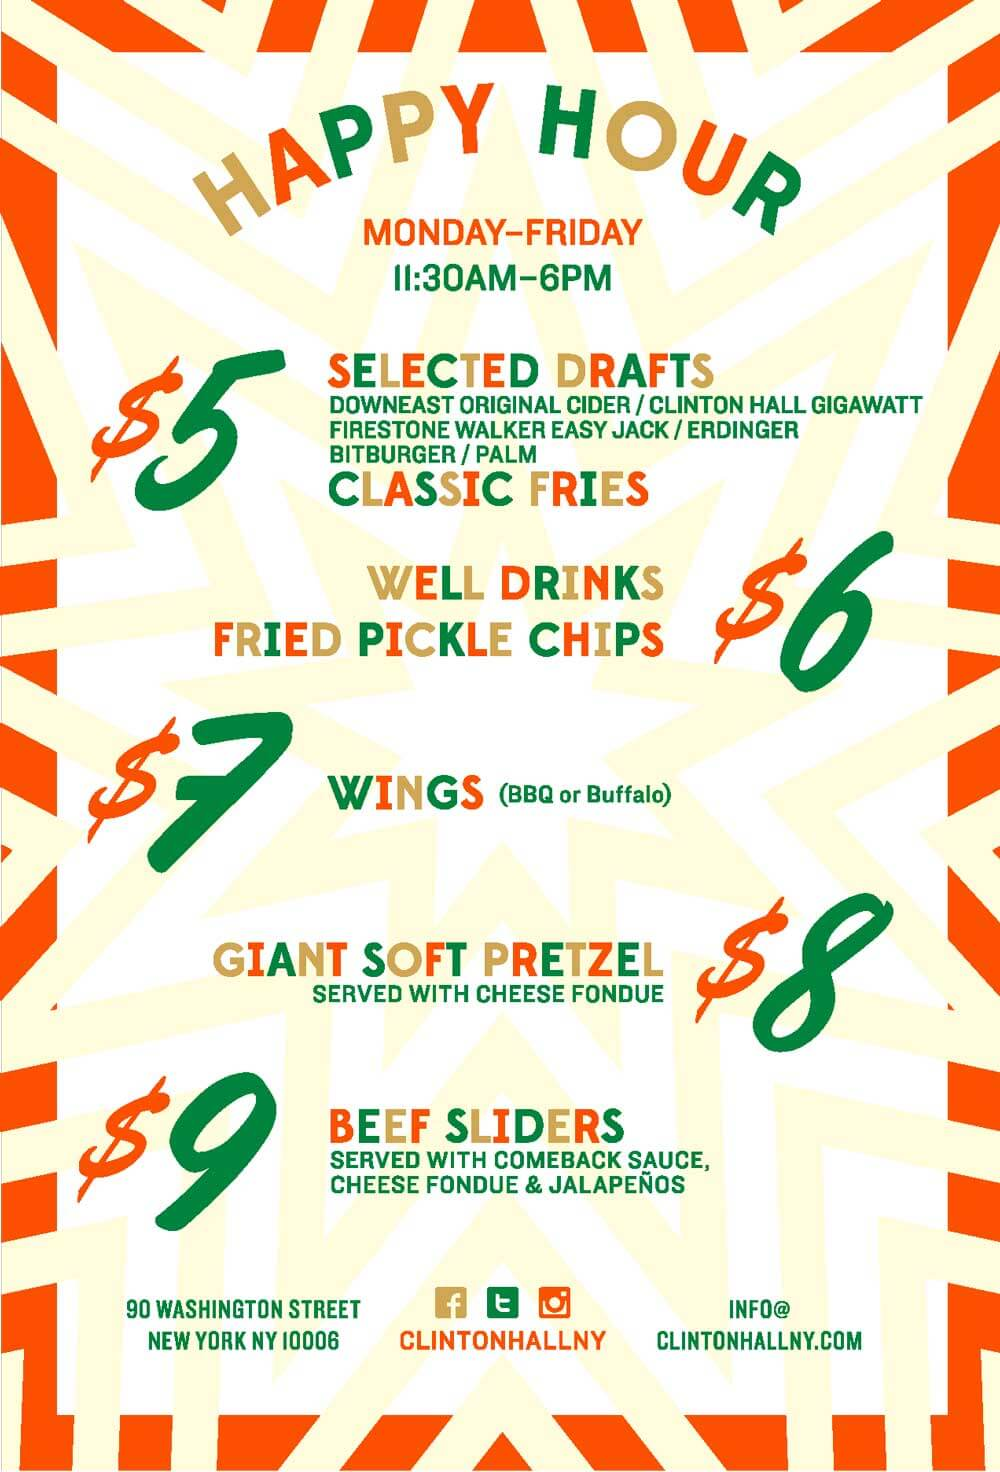 Clinton Hall FiDi Happy Hour Menu